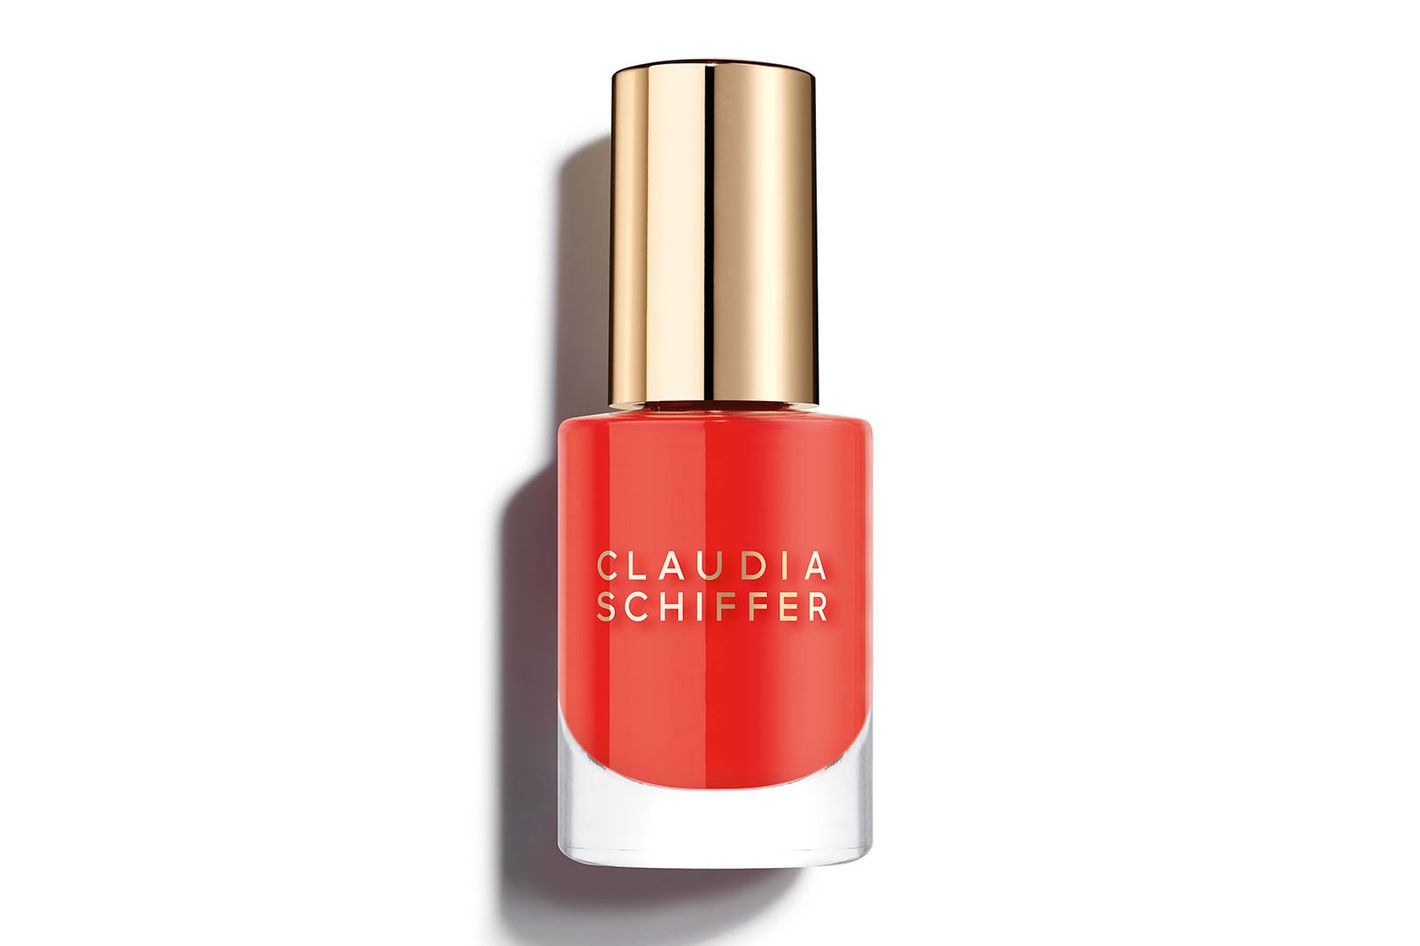 Claudia Schiffer Nail Polish, Popsicle